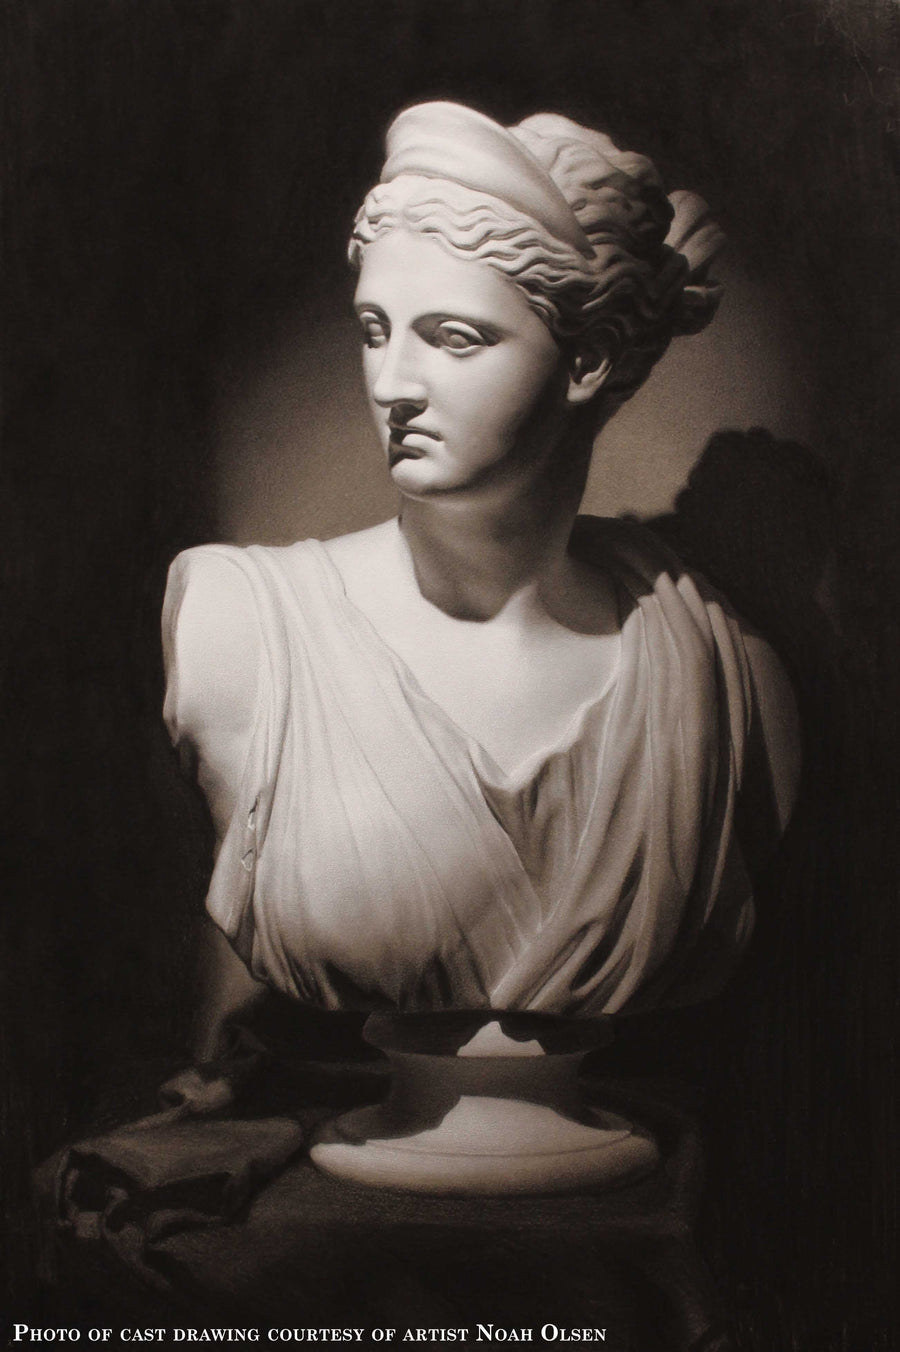 Photo of Cast Drawing of Plaster Caproni Cast of female bust on a table with a gray black background